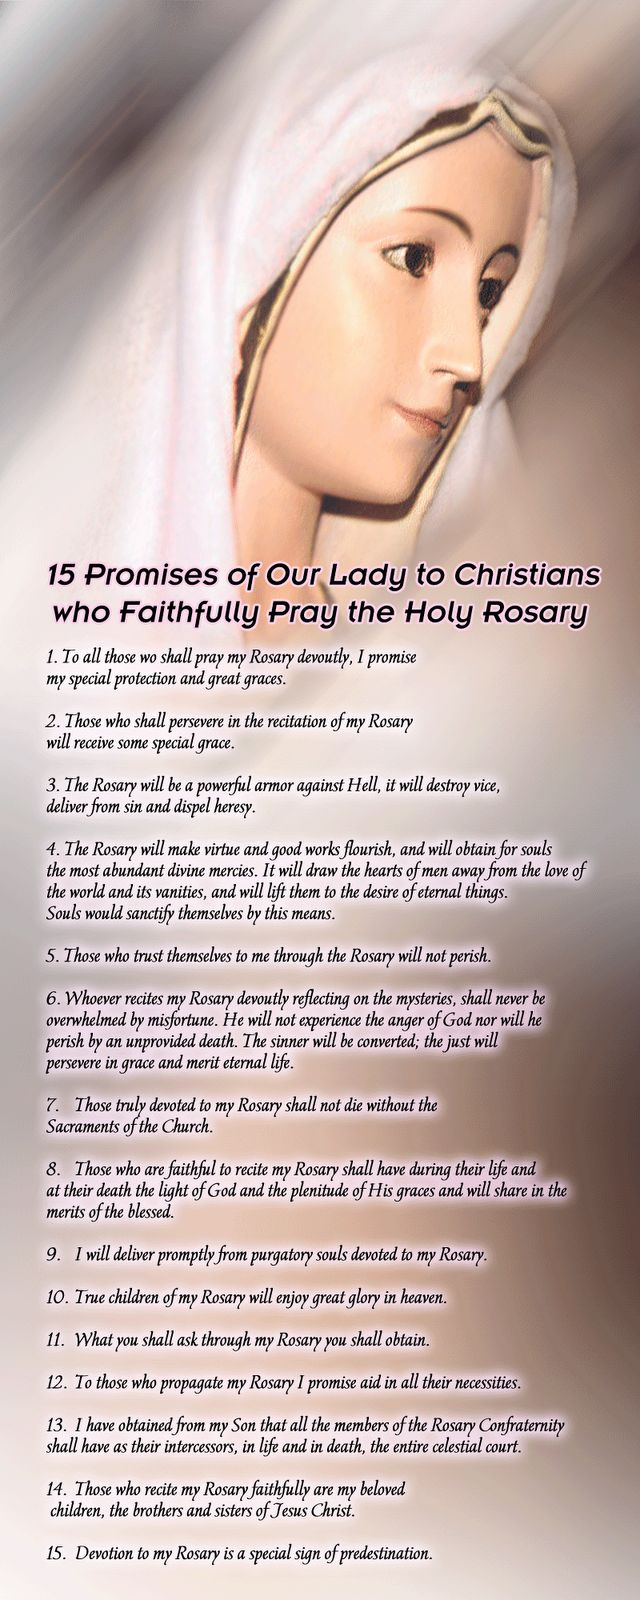 Holy Weapons Against Evil | The 15 Promises of Our Lady to Christians who Pray the Rosary